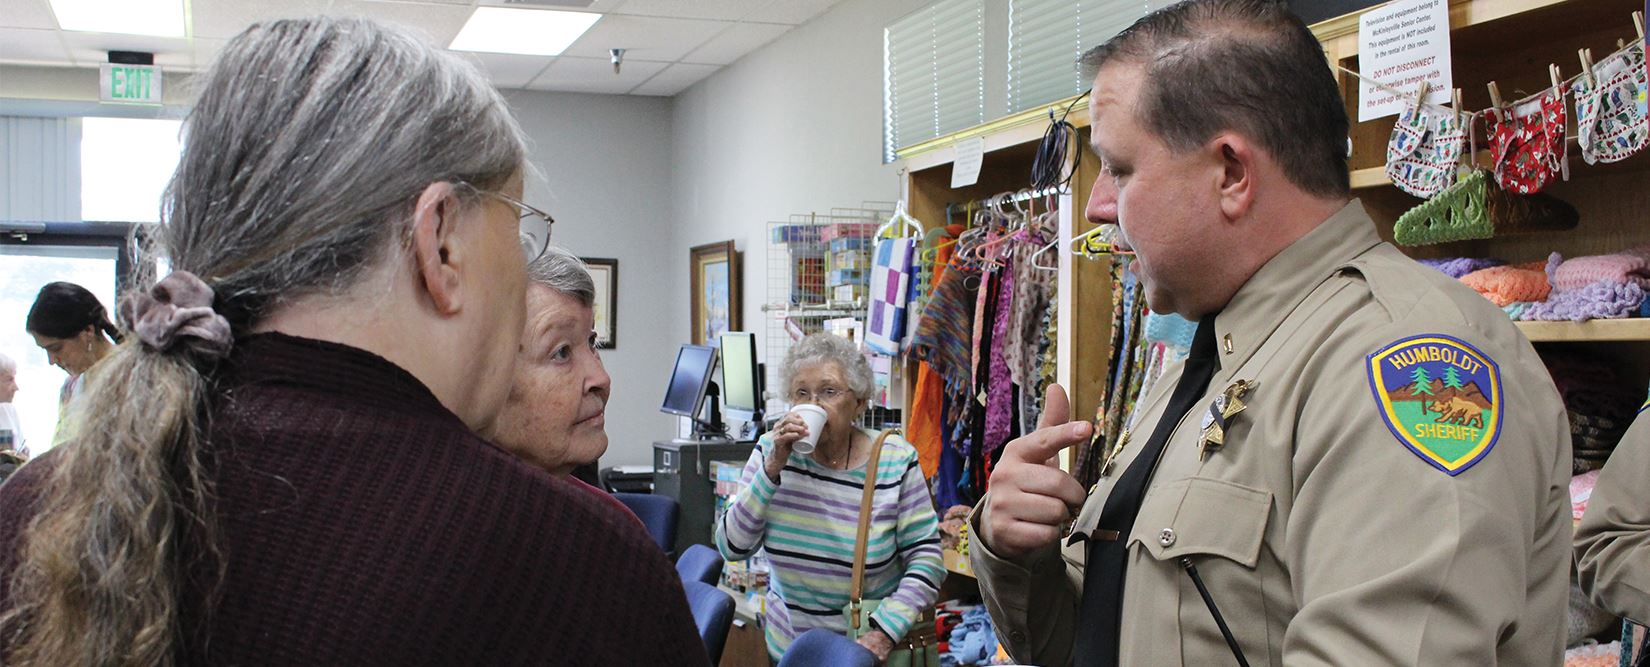 Sheriff's Captain speaks with two women during a Coffee with the Cops event